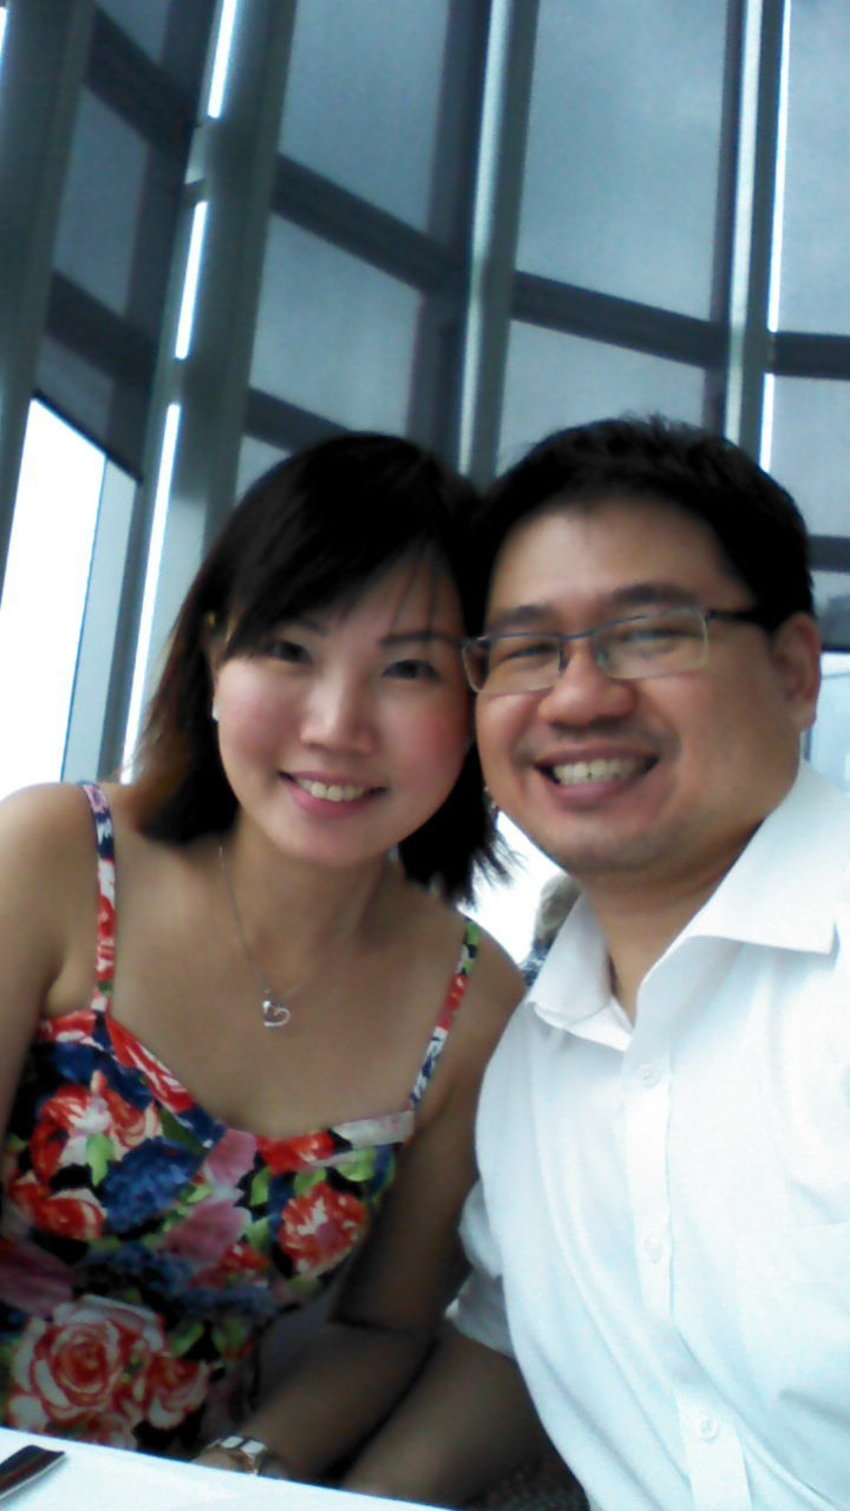 Our 6th Year Wedding Anniversary at Salt Grill and Sky Bar